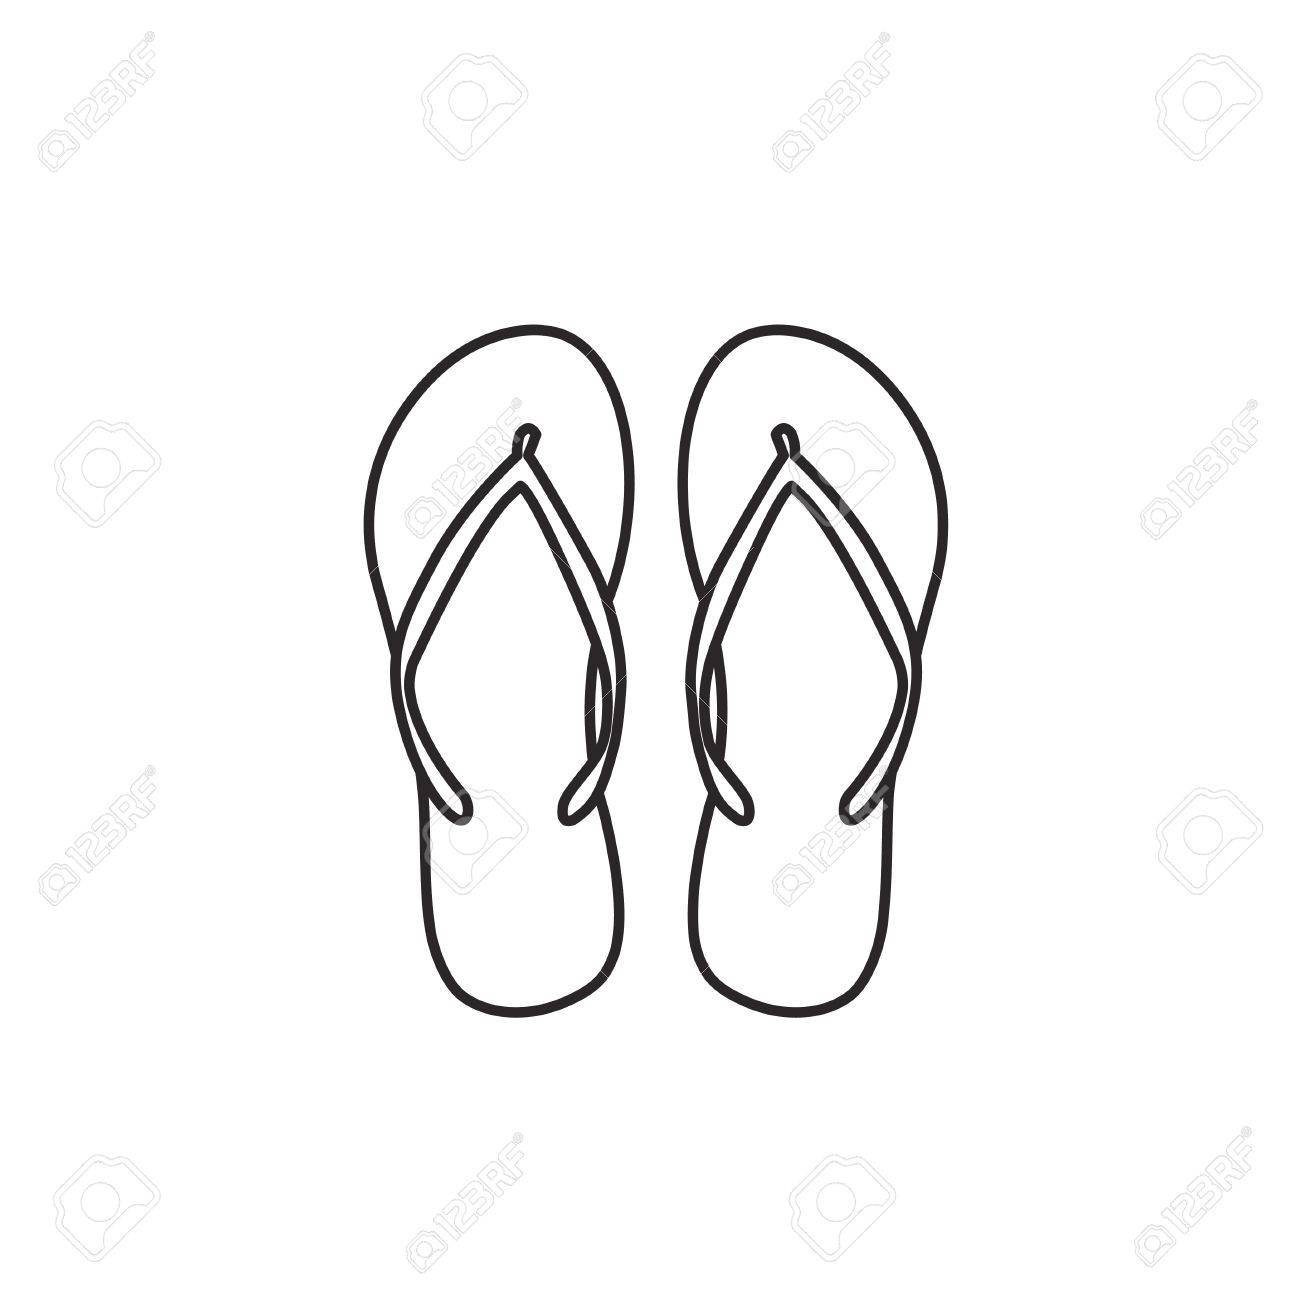 a165c9307 Flip flop slippers icon outline contour vector on white background Stock  Vector - 62835936